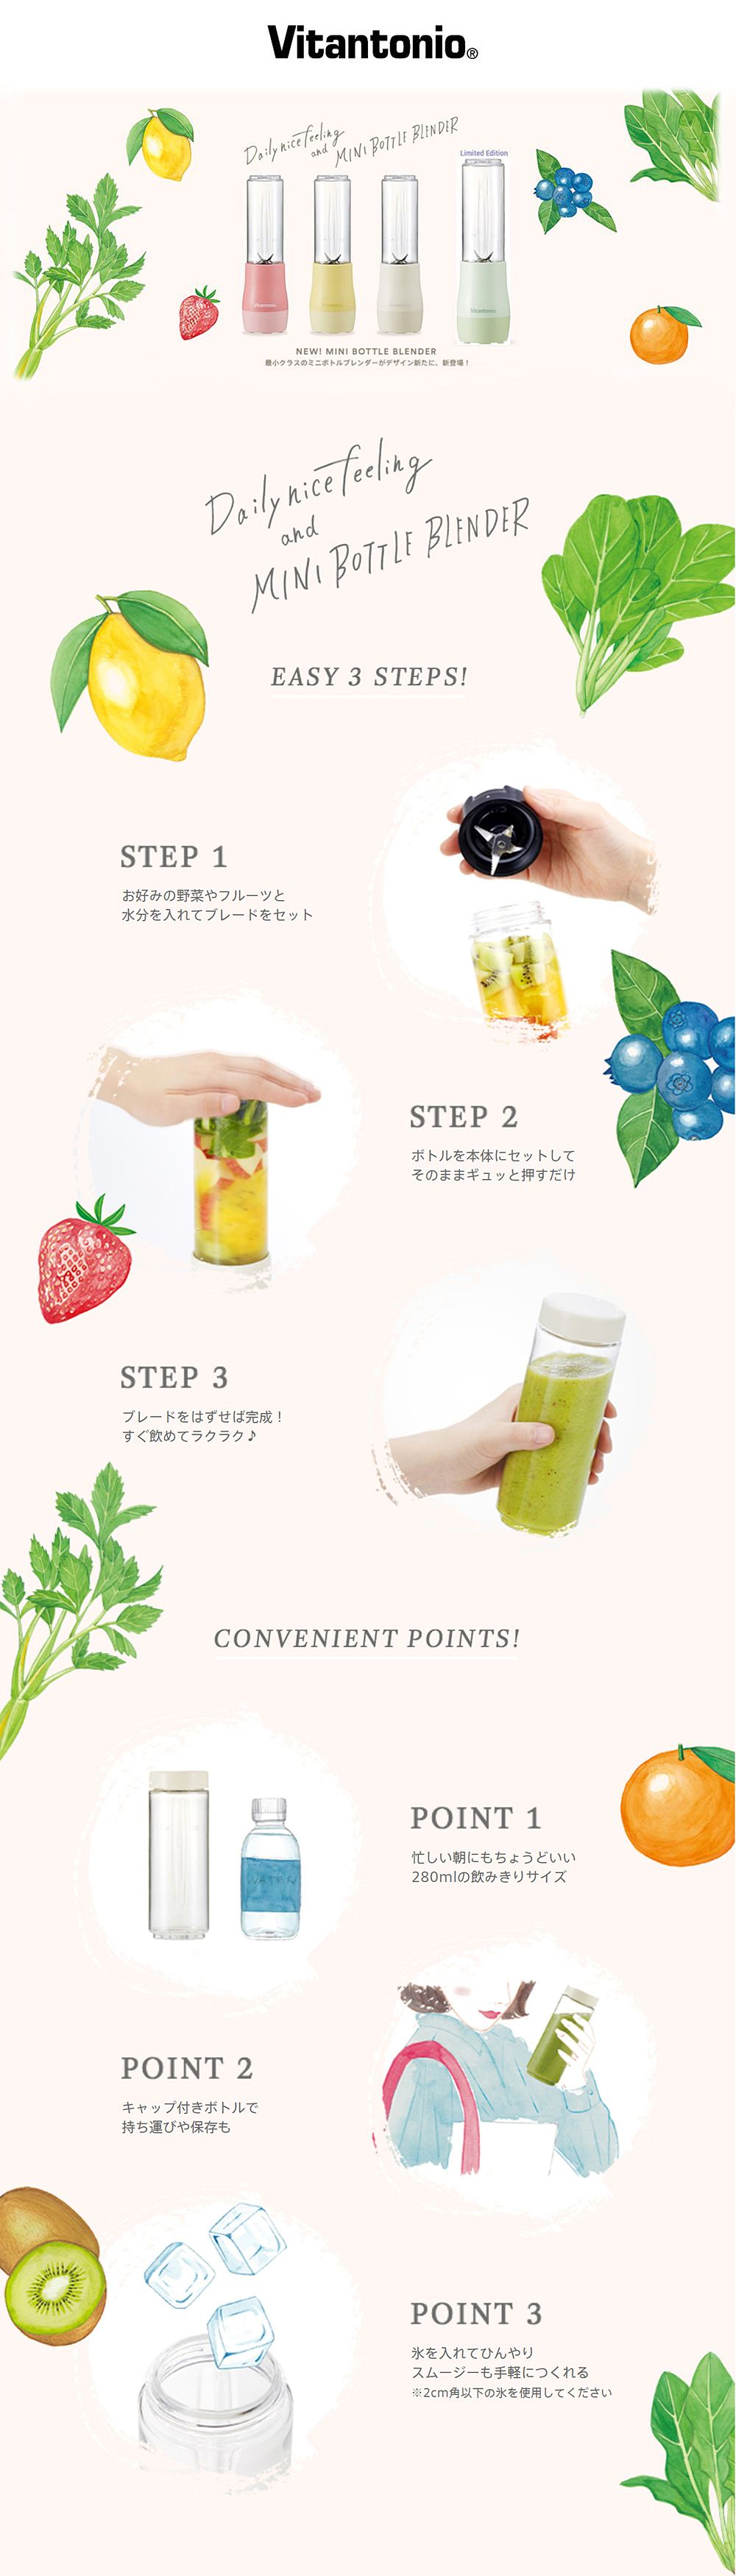 How to use Vitantonio Mini Bottle Blender